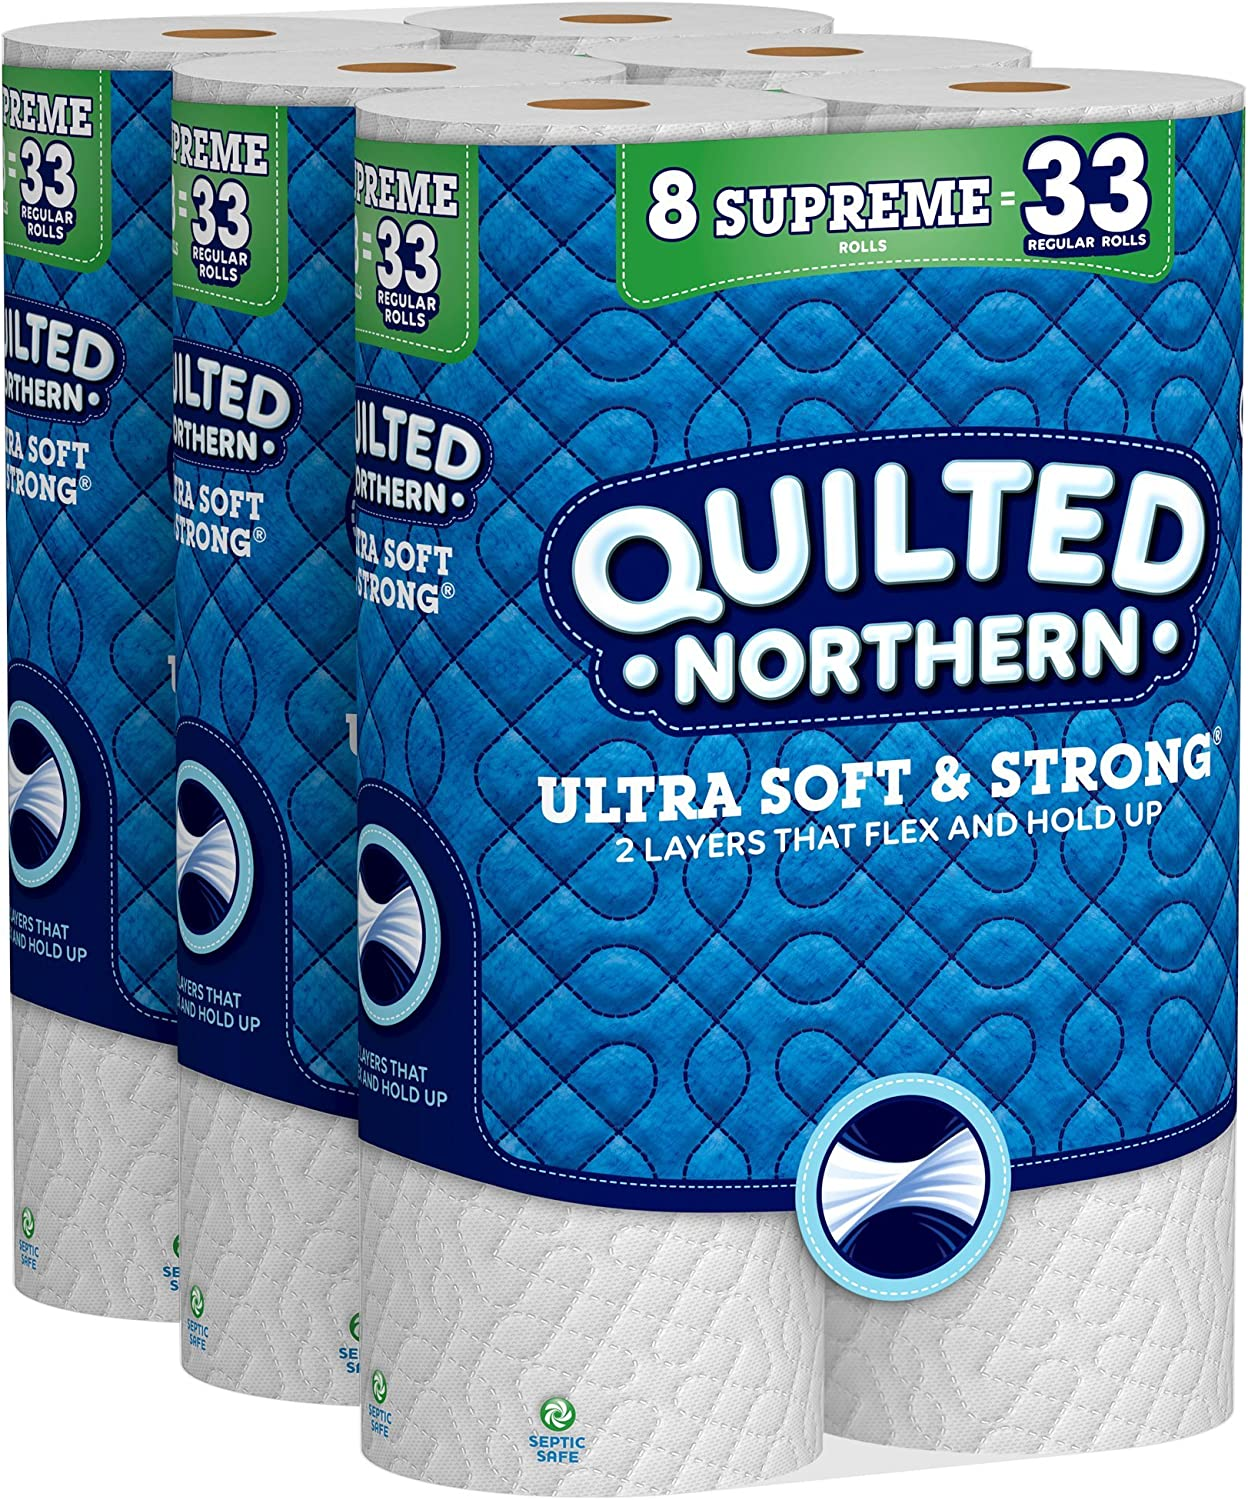 Quilted Northern Ultra Soft & Strong Toilet Paper, 24 Supreme Rolls, 340 2-Ply Sheets Per Roll: Health & Personal Care